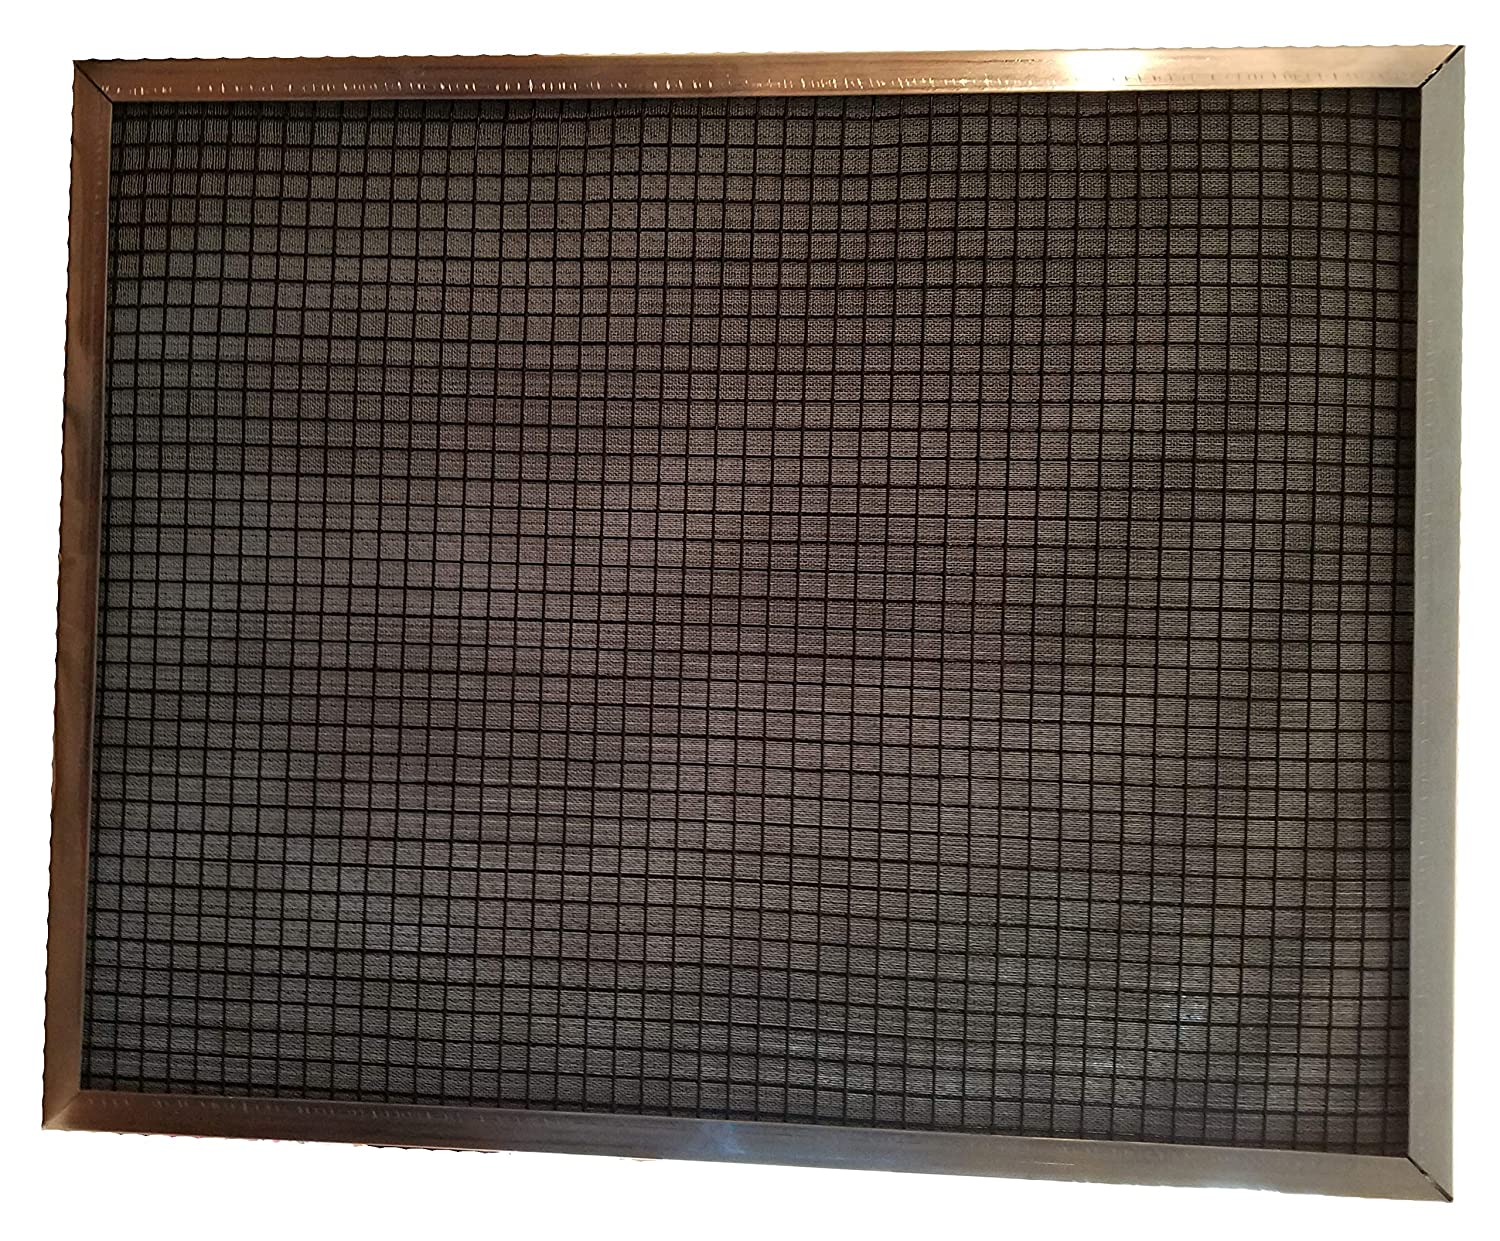 Just Vacuum or Hose Off and Reuse Save $$$ 29.75x35.75x1 BioAir Electrostatic Washable Permanent A//C Furnace Filter Exact Size DESIGNED FOR GEOTHERMAL UNITS 29-3//4 x 35-3//4 x 1